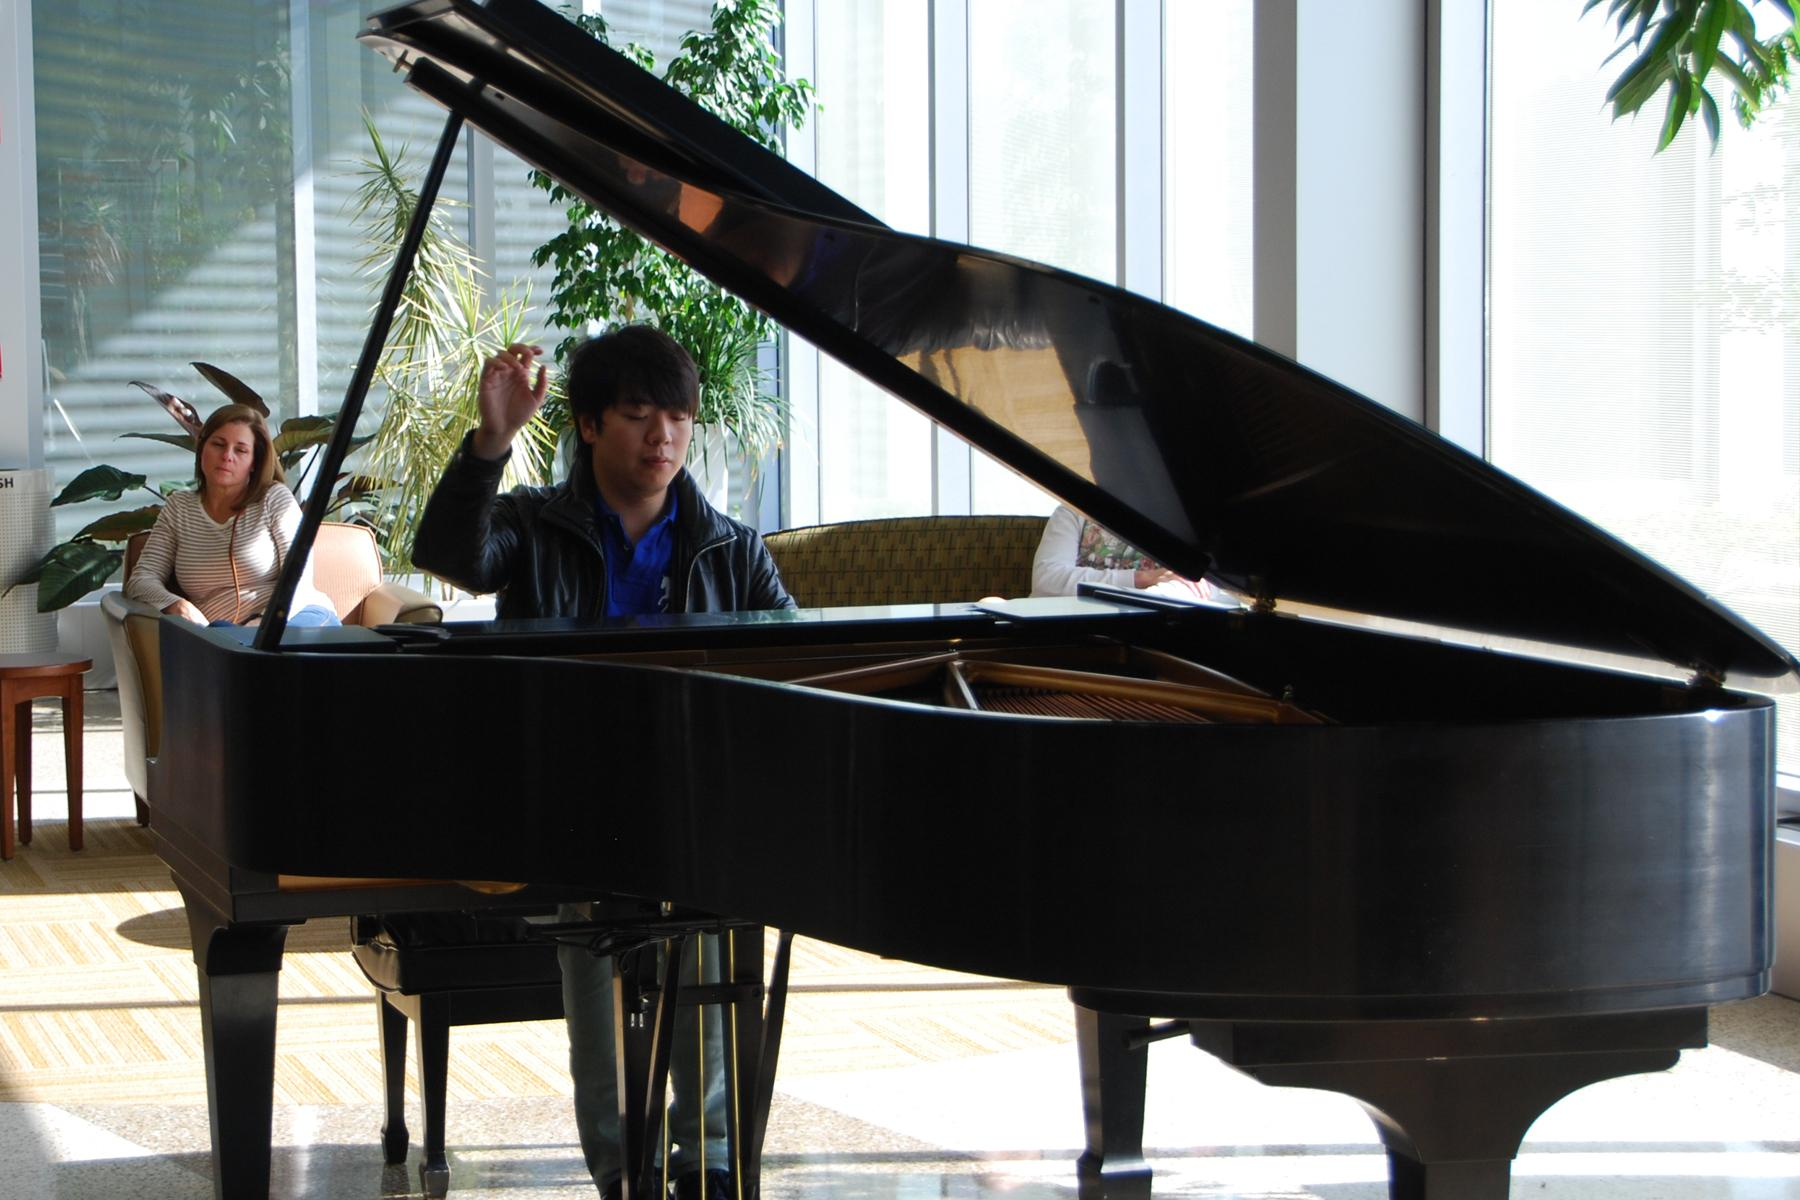 Concert Pianist Inspires Through Music At Hospital ...